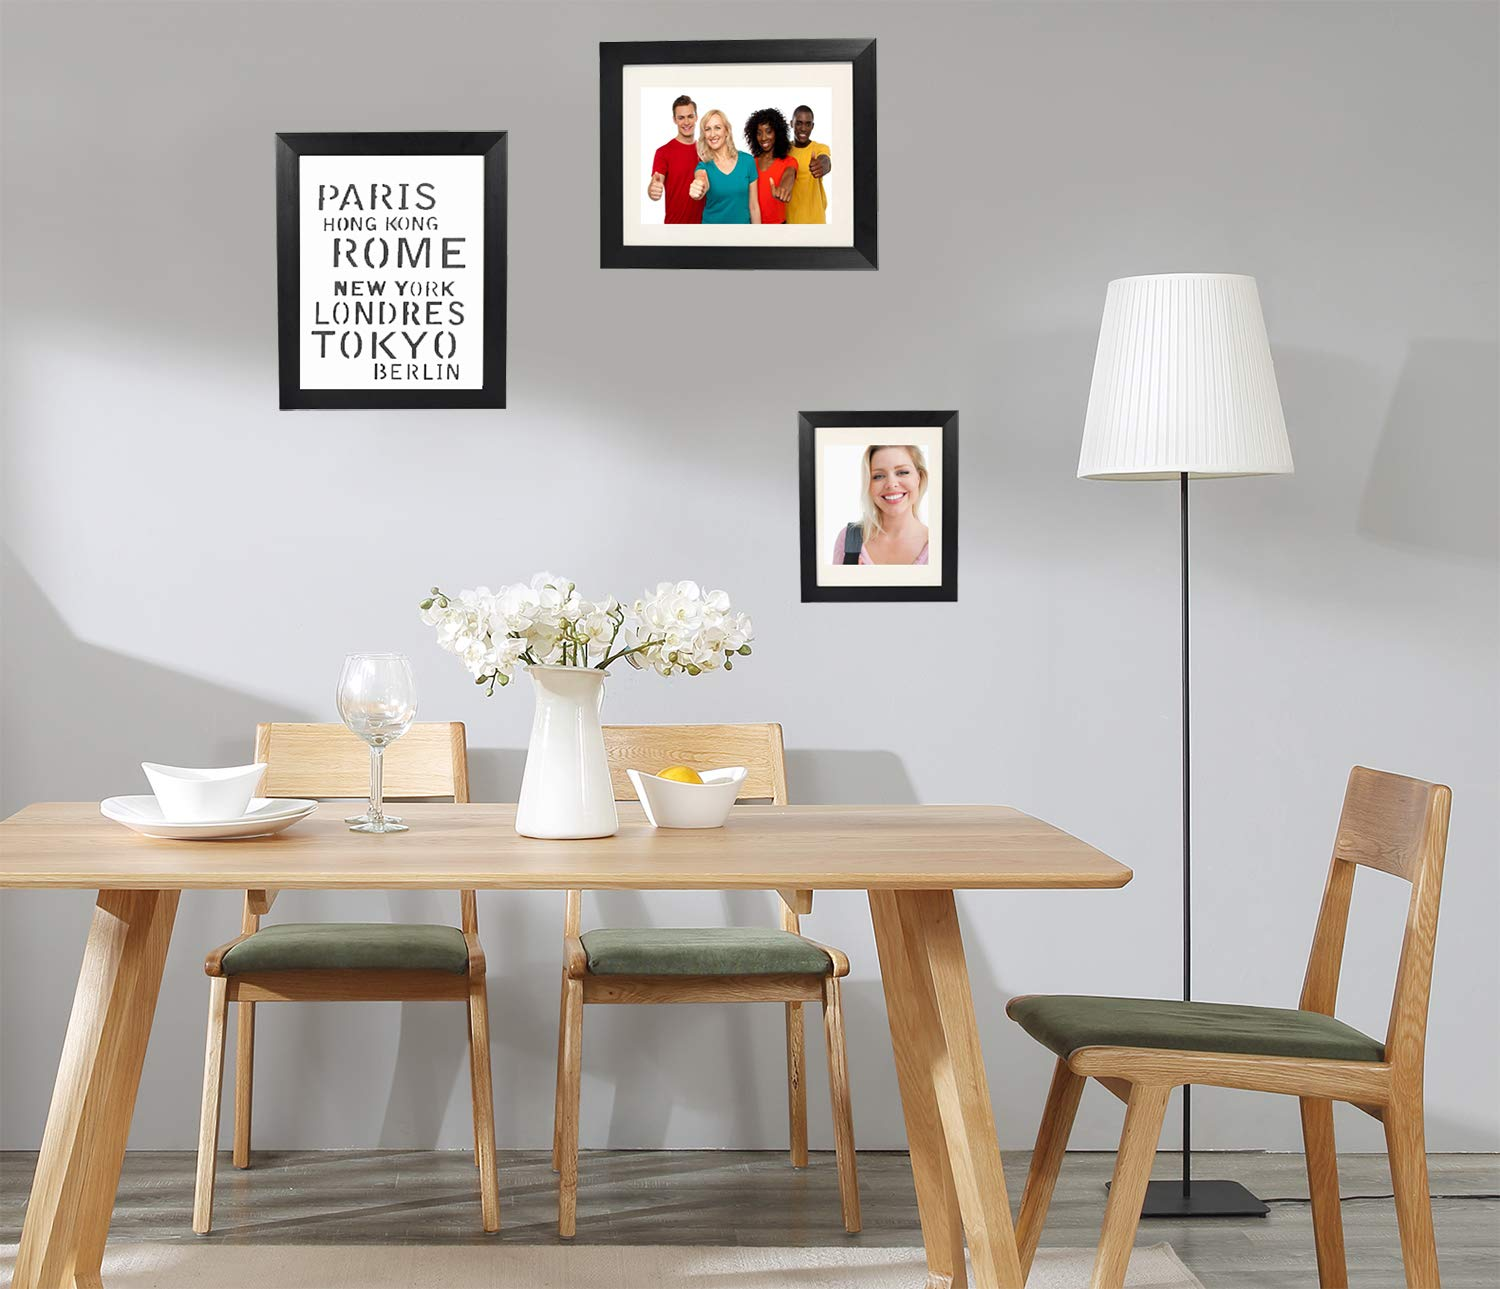 """YINGHUA 11x14 Black Picture Frame - Made to Display Pictures (8""""x10"""") with Mat or (11""""x14"""") Without Mat - Display Photos Vertically or Horizontally- Wall Mounting Material Included"""